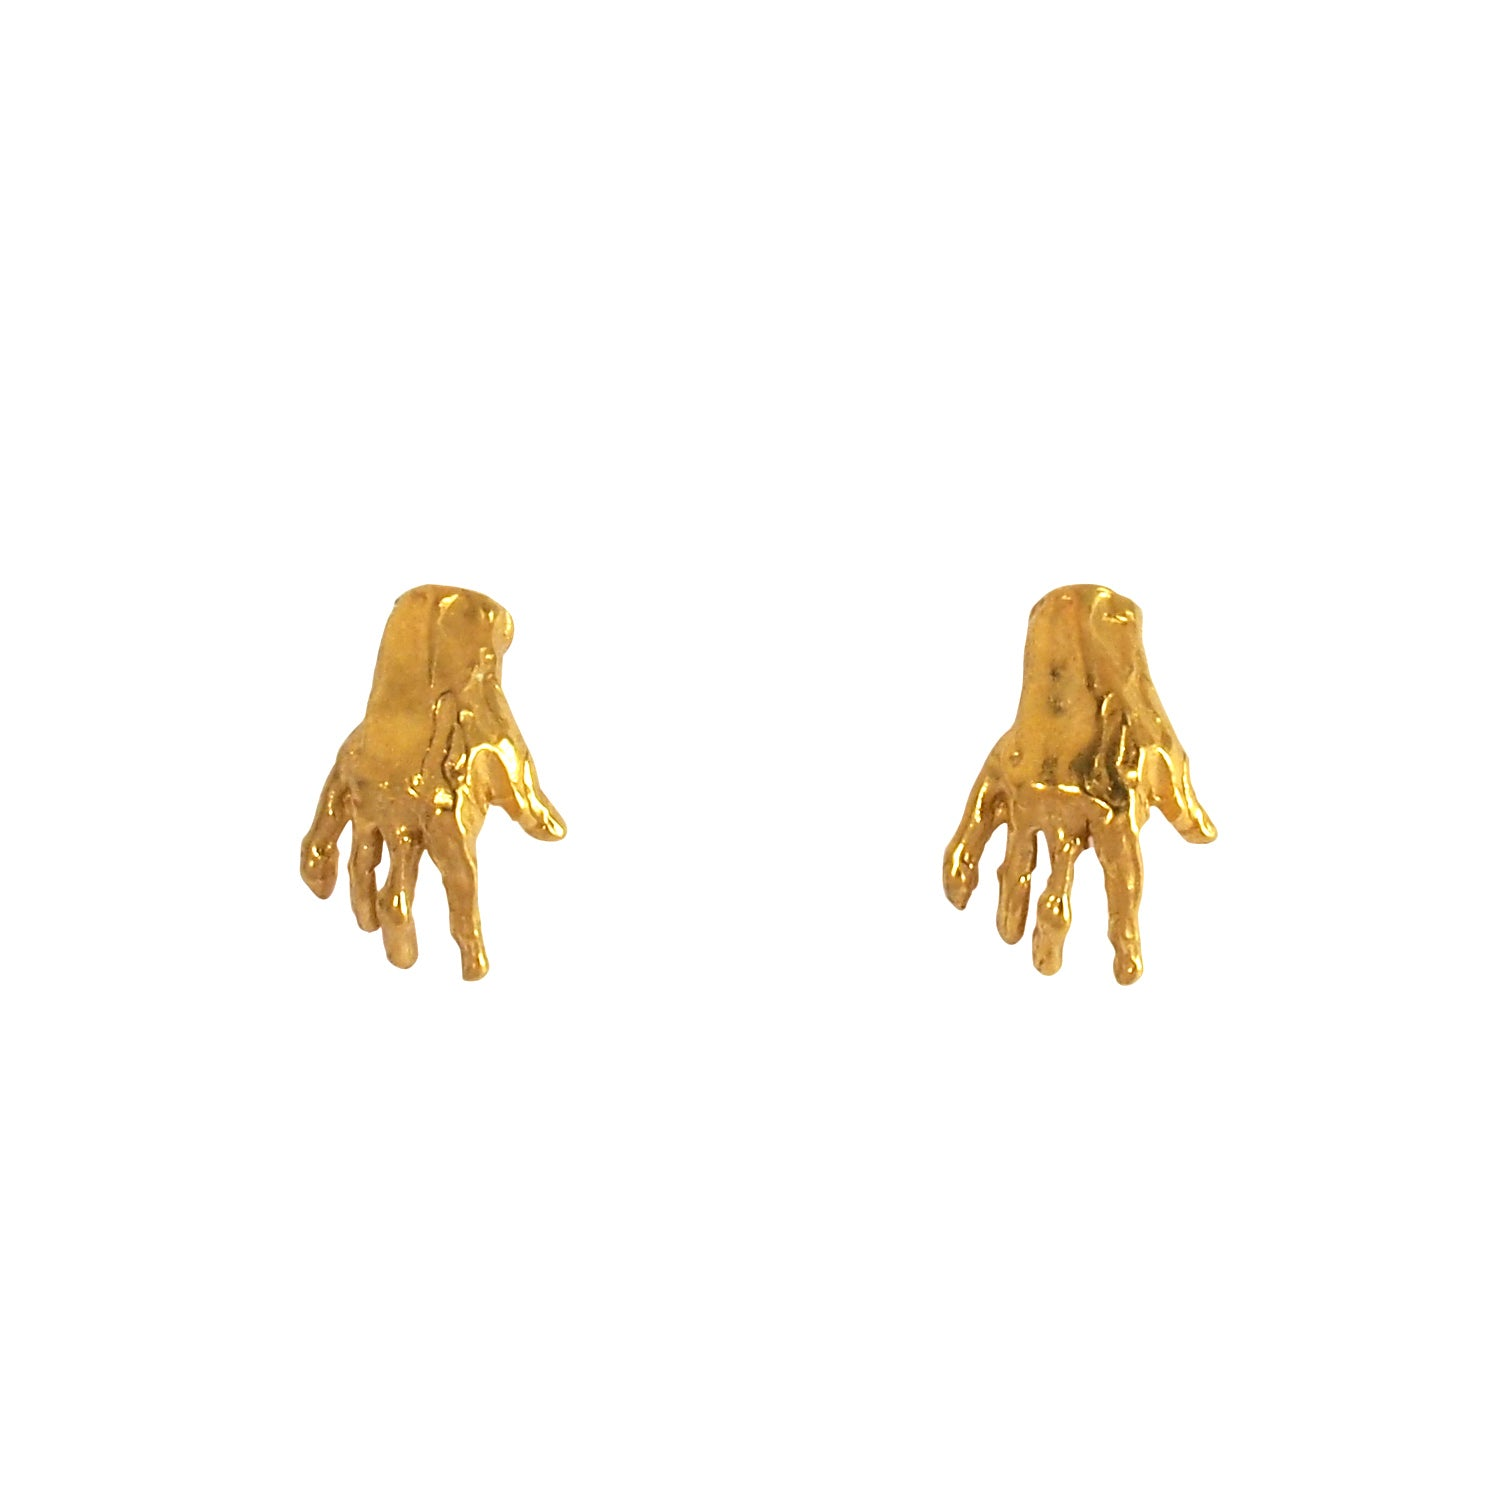 Hand Stud Gold Vermeil Earrings